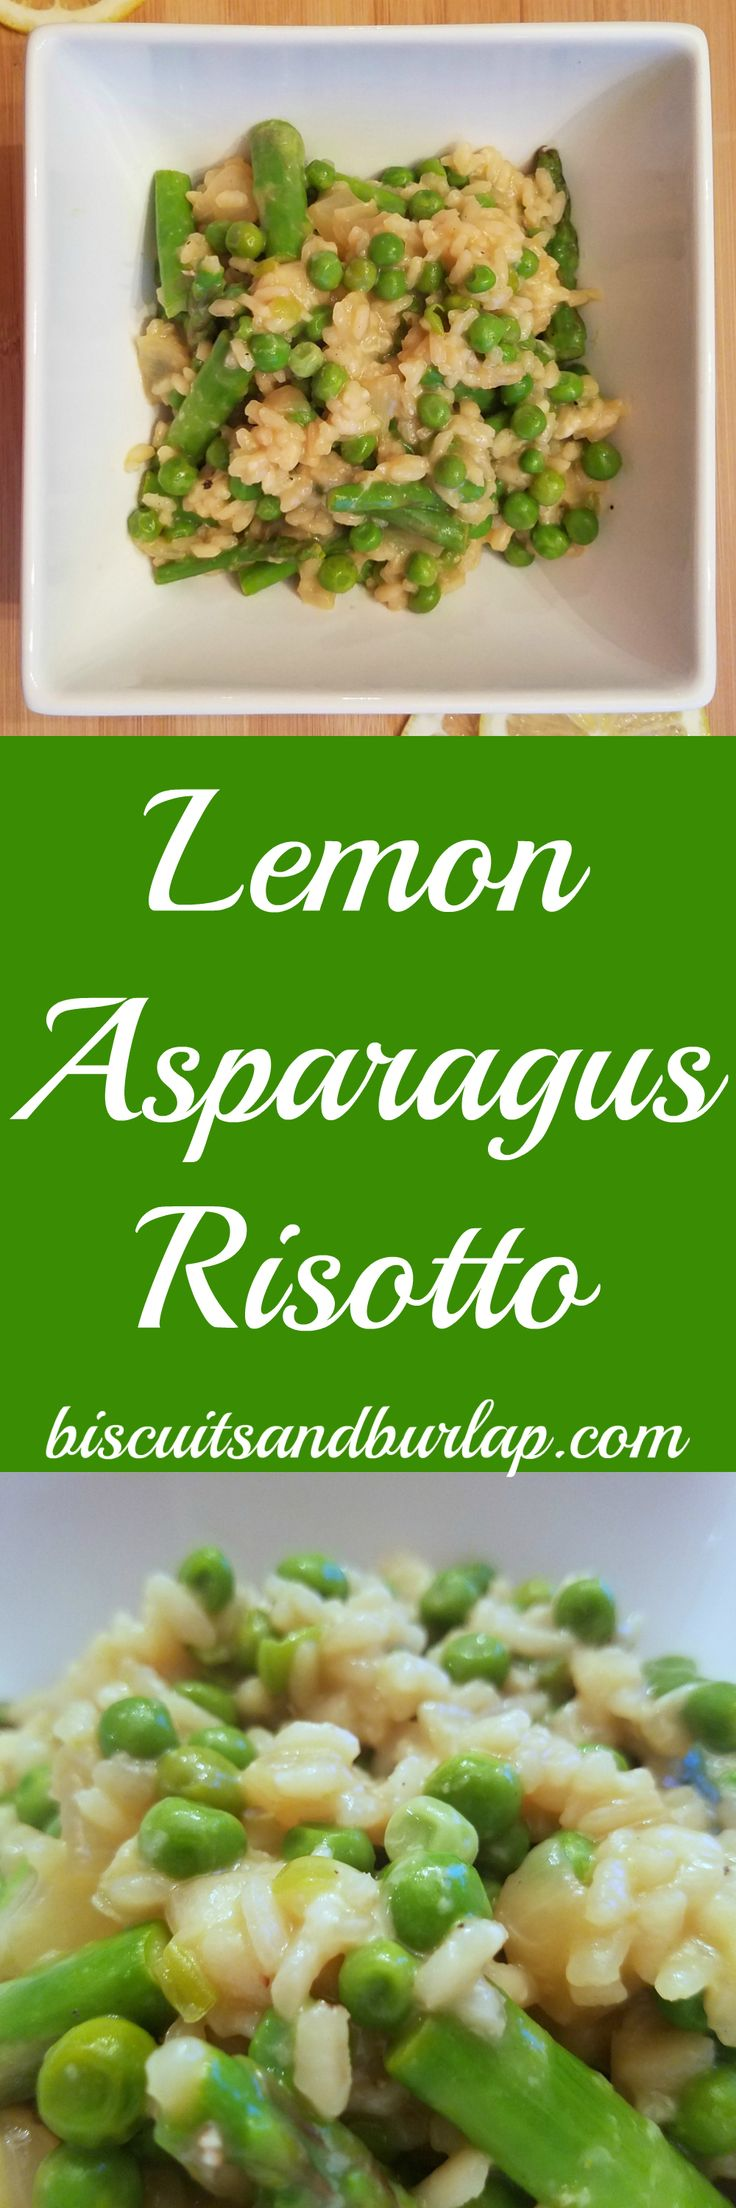 Lemon Risotto with Asparagus! This would be absolutely delicious! Wonderful as a small meal or with your choice of protein (chicken, steak, fish etc)